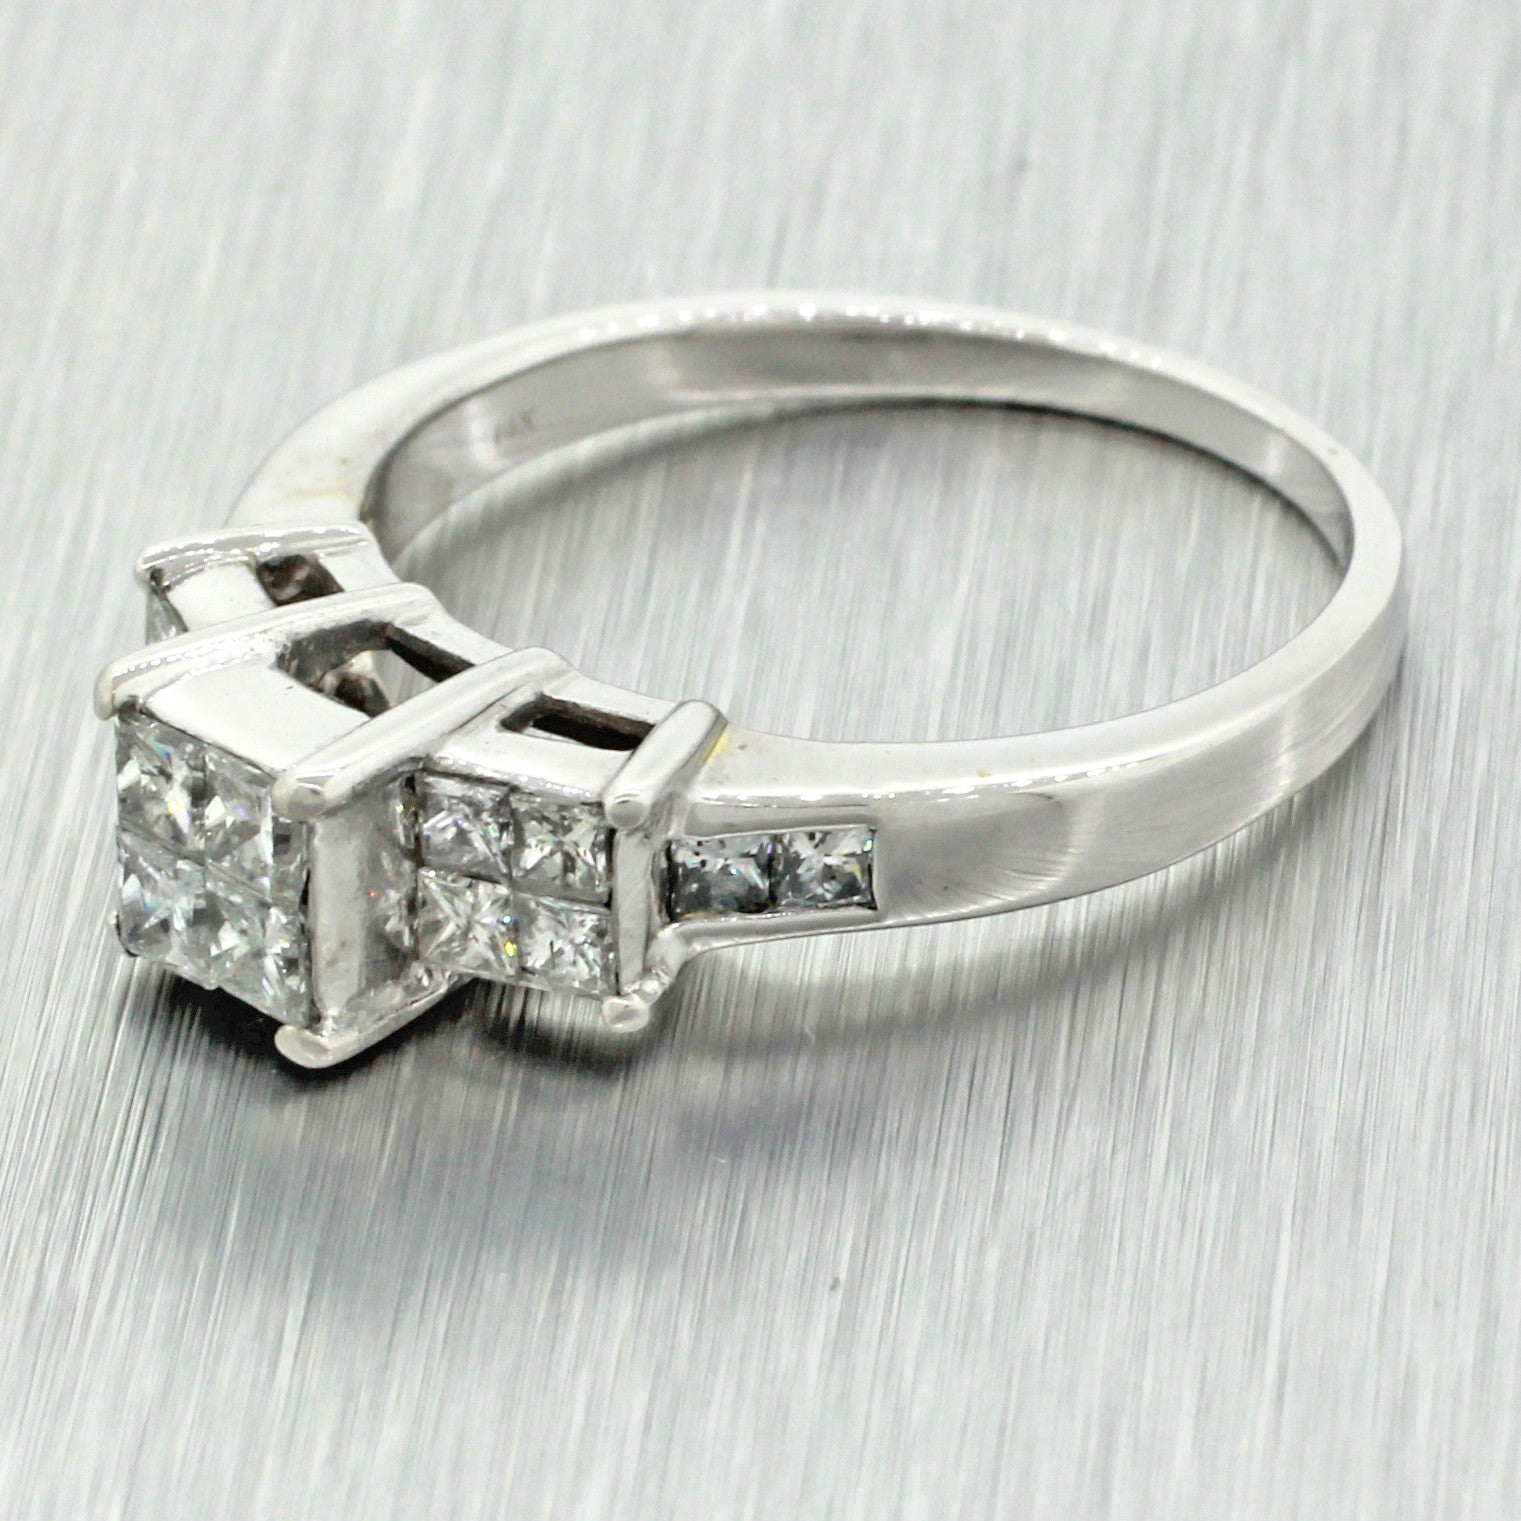 Modern Solid 14k White Gold 1.70ct Princess Cut Diamond Solitaire Accent Engagement Ring